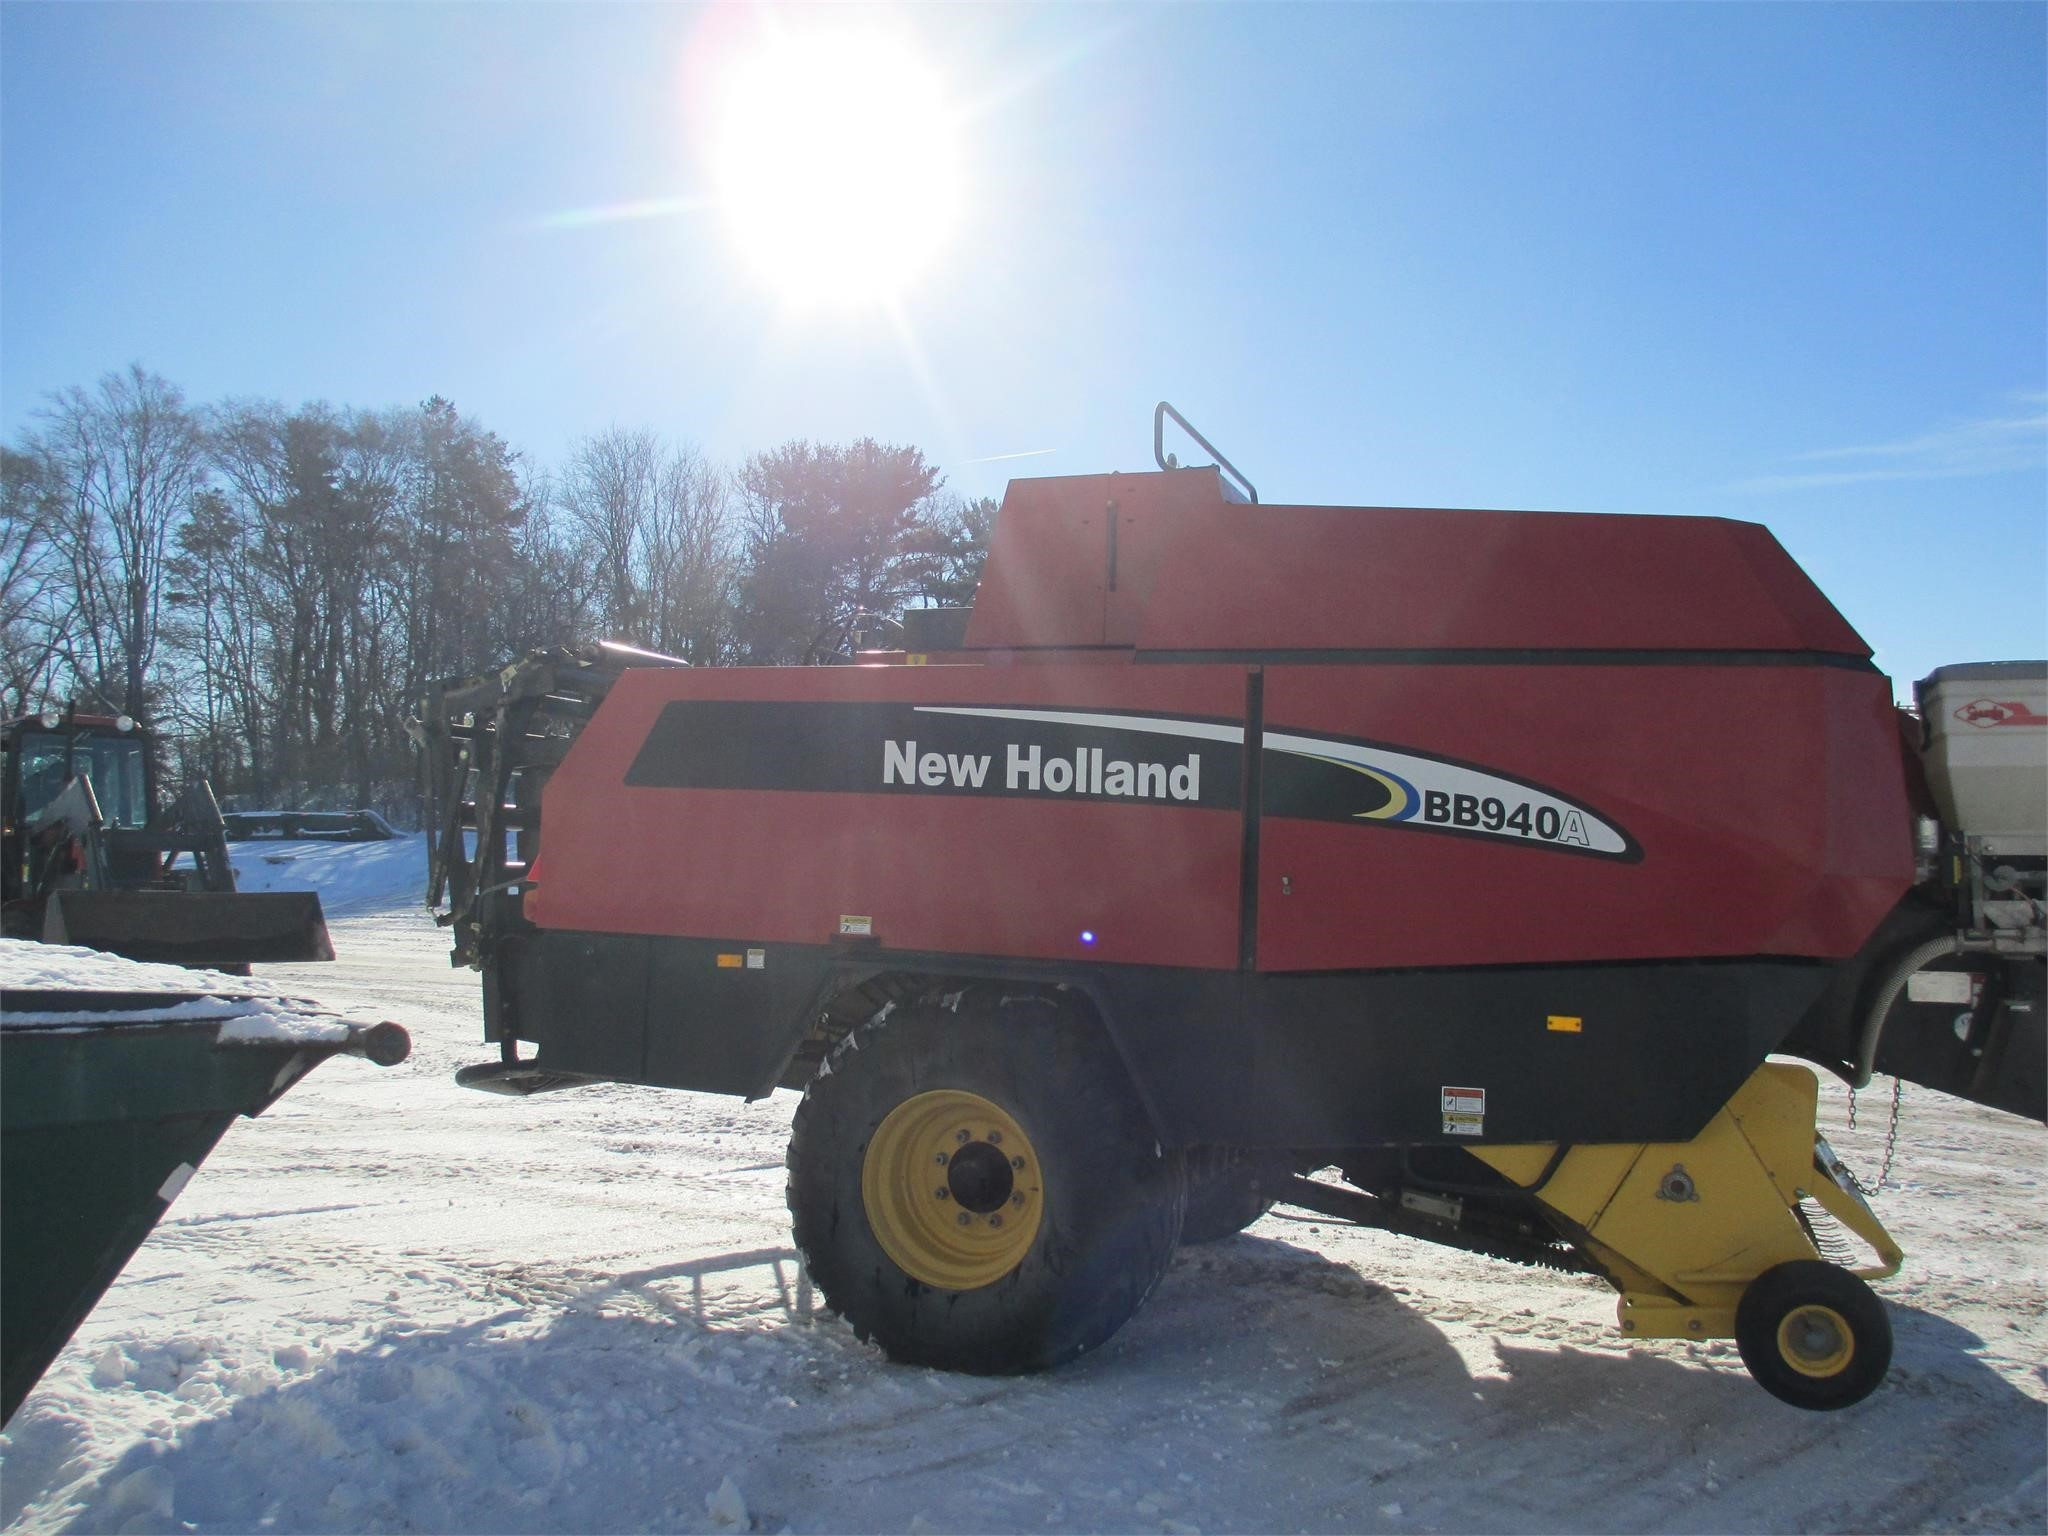 Used, 2003, NEW HOLLAND, BB940A, Hay and Forage Equipment - Square Balers - Large